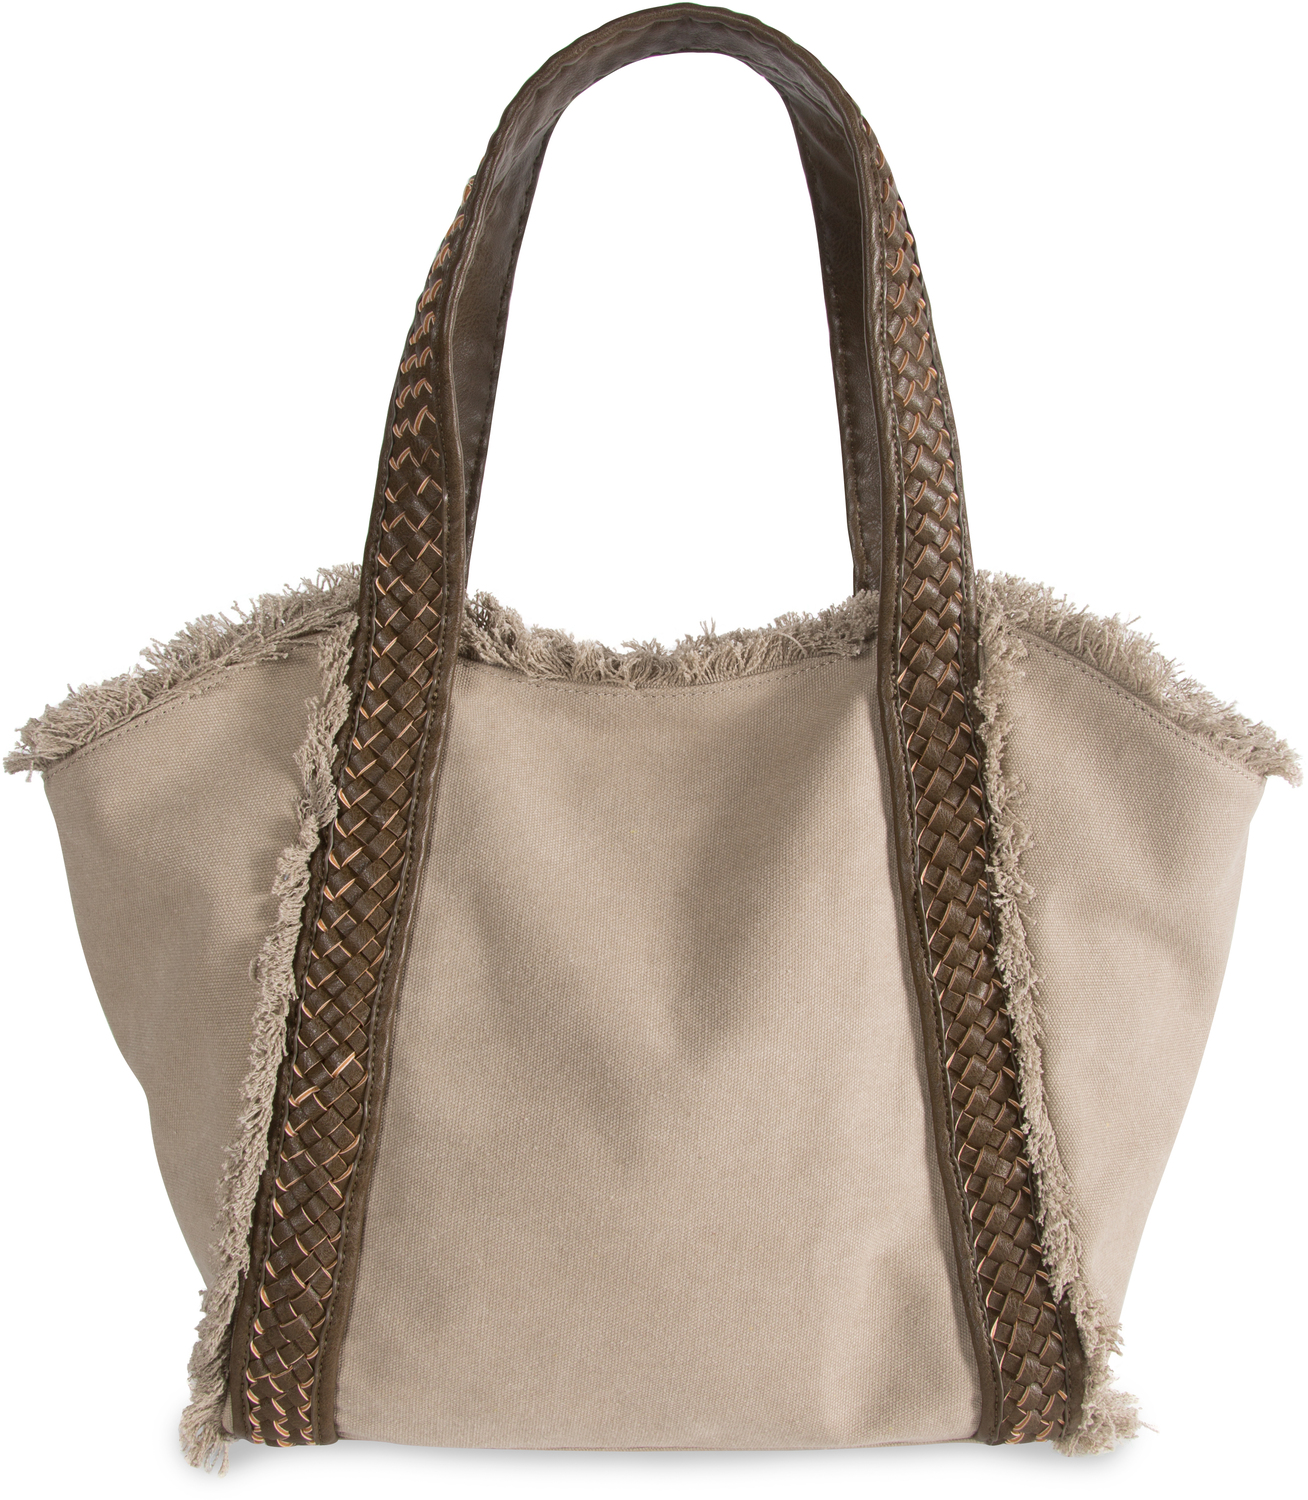 "Khaki by H2Z Handbags - Khaki - 19"" x 13"" Frayed Canvas Handbag"